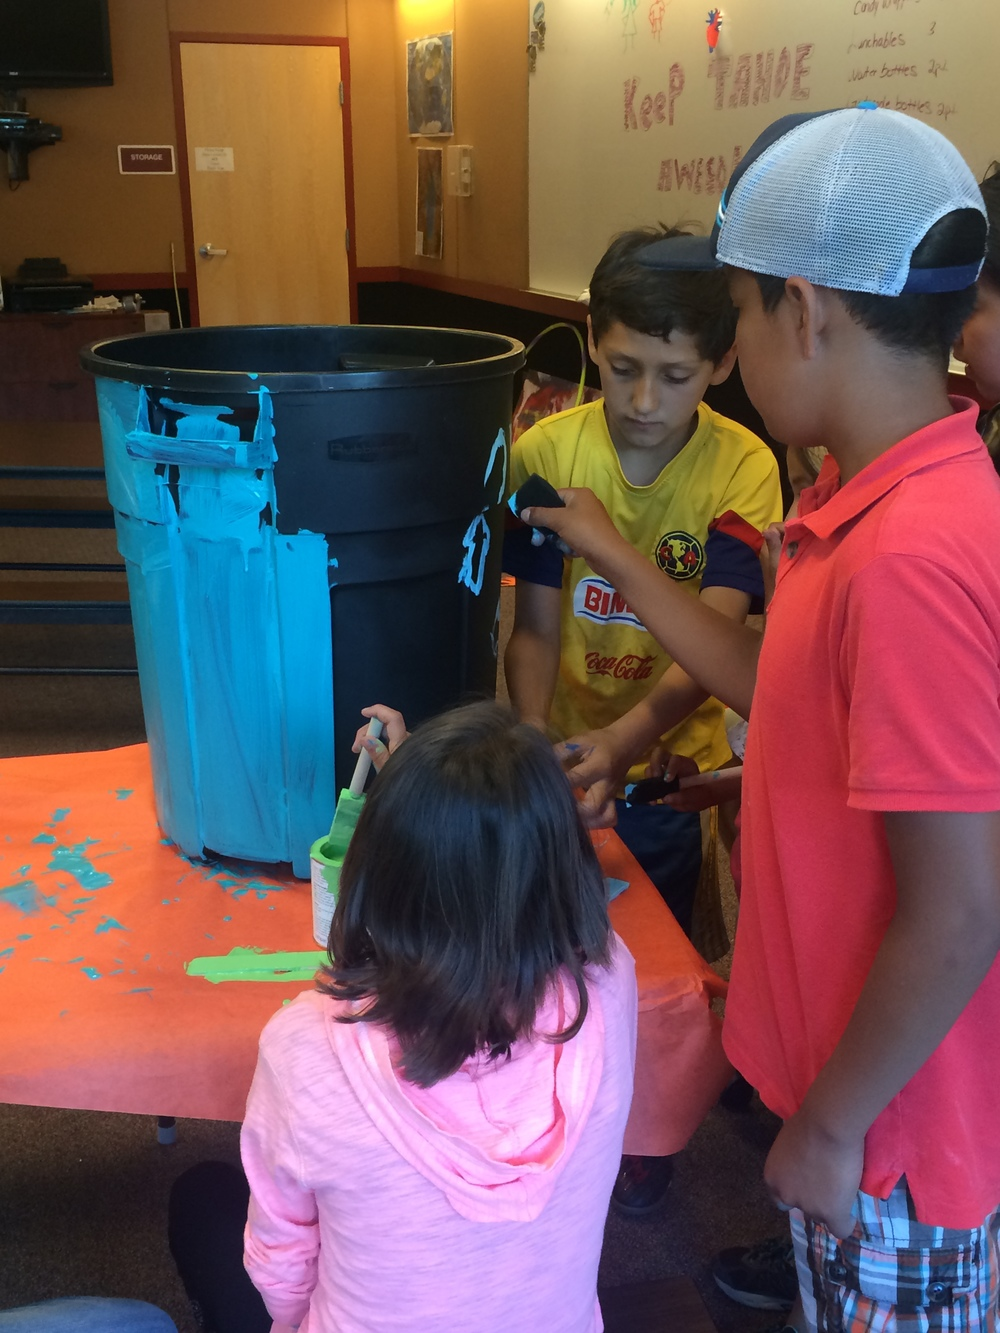 These club members are focused and hard at work decorating their recycling bin with detail